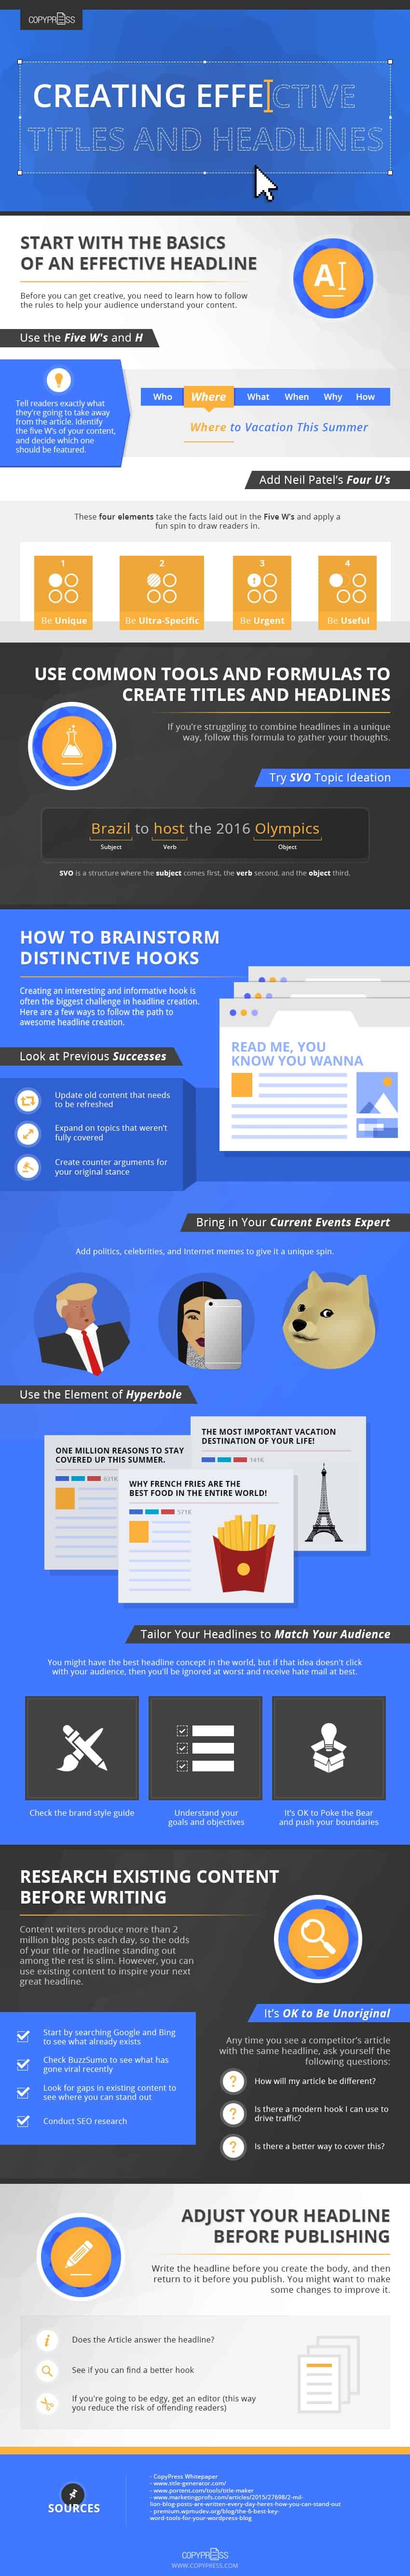 create-effective-titles-infographic